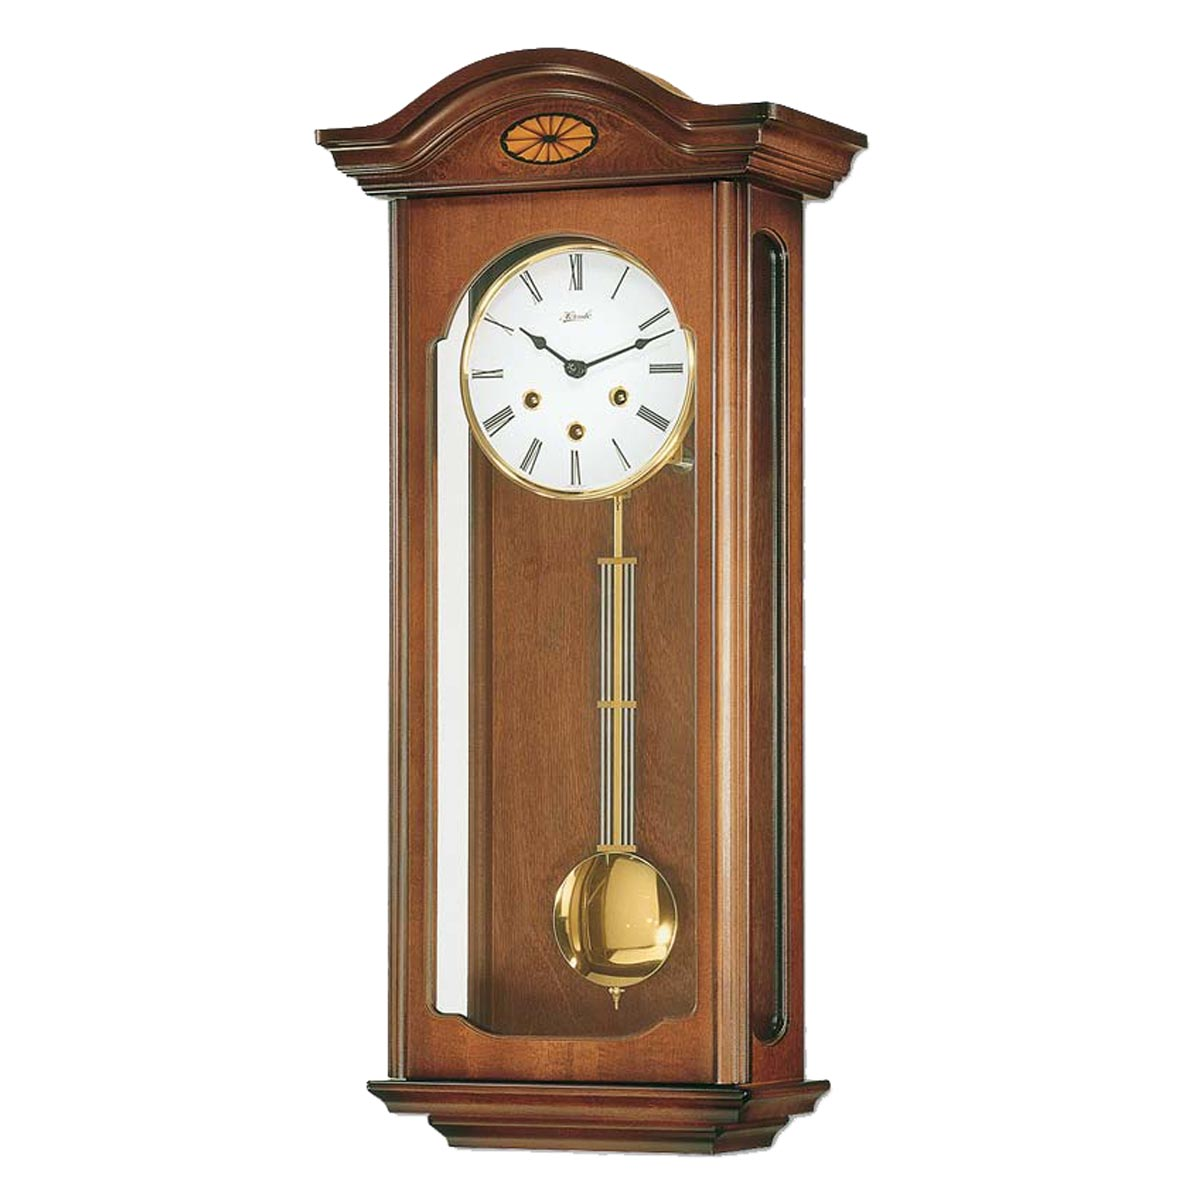 Hermle OXFORD-70456-030341 Regulator Wall Clock